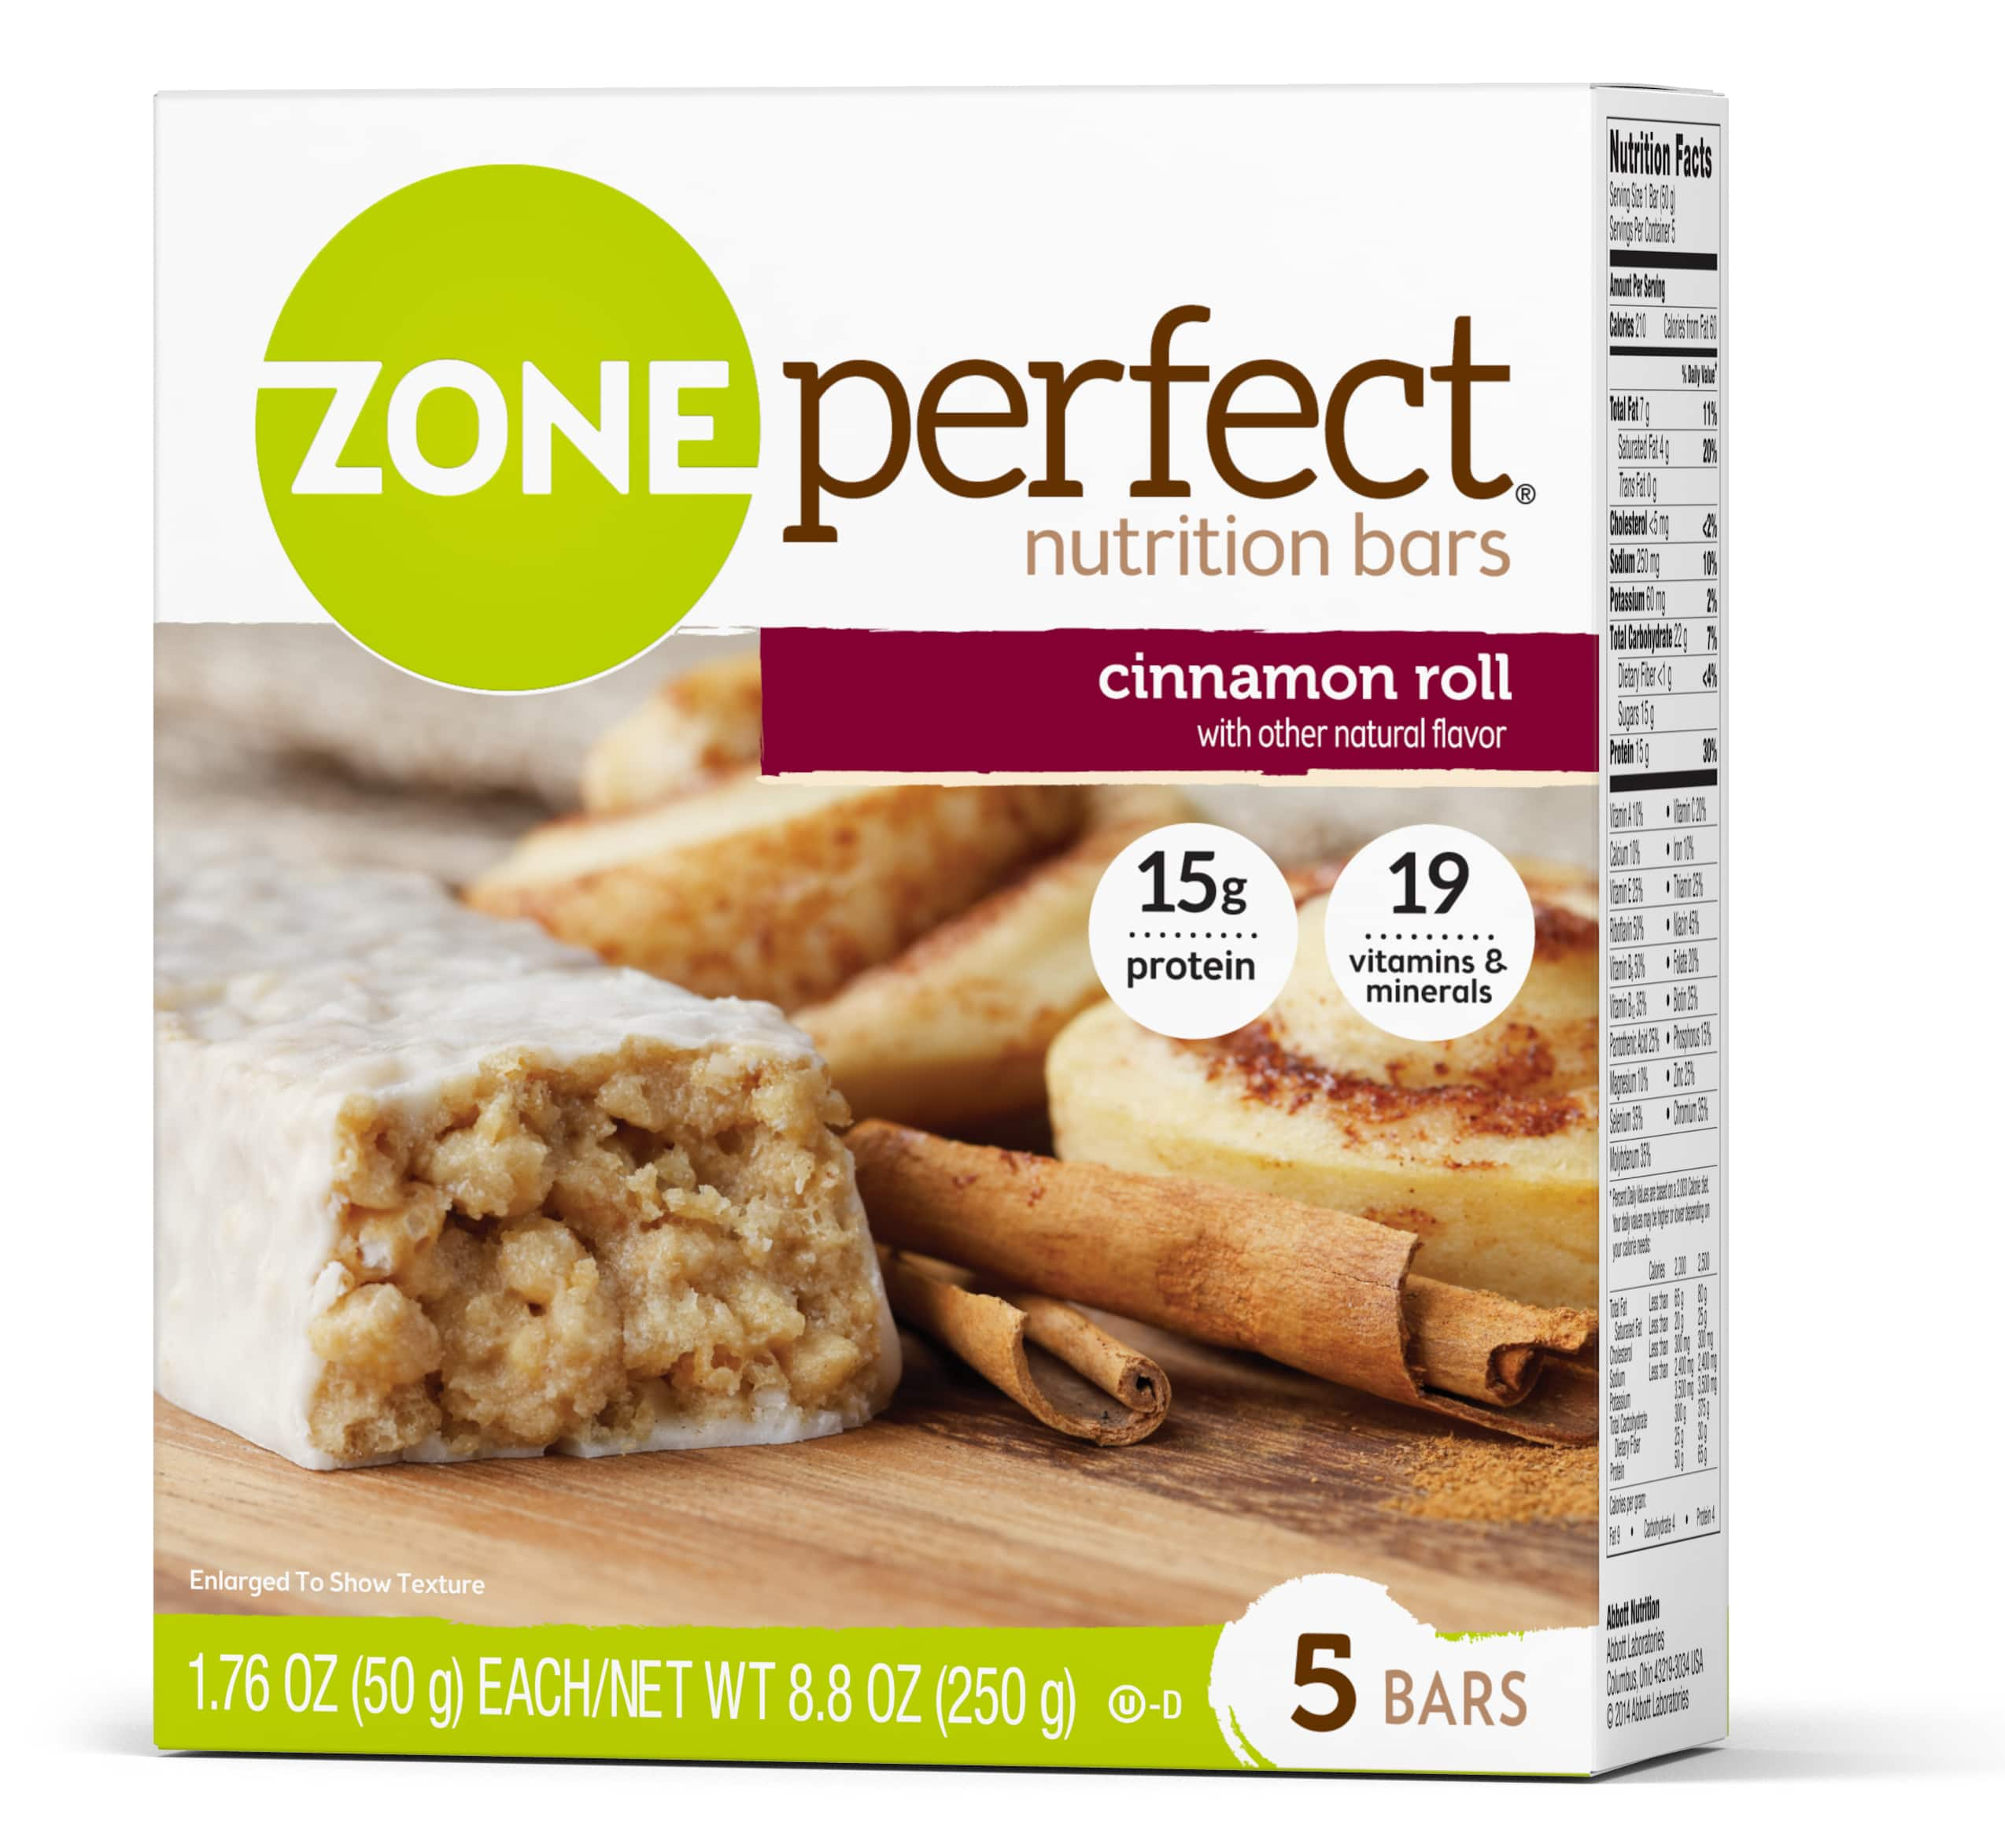 30-Count 1.76-Oz ZonePerfect Protein Bars (Cinnamon Roll) $17.36 or $15.53 w/ S&S + Free Shipping w/Prime or $25+ orders